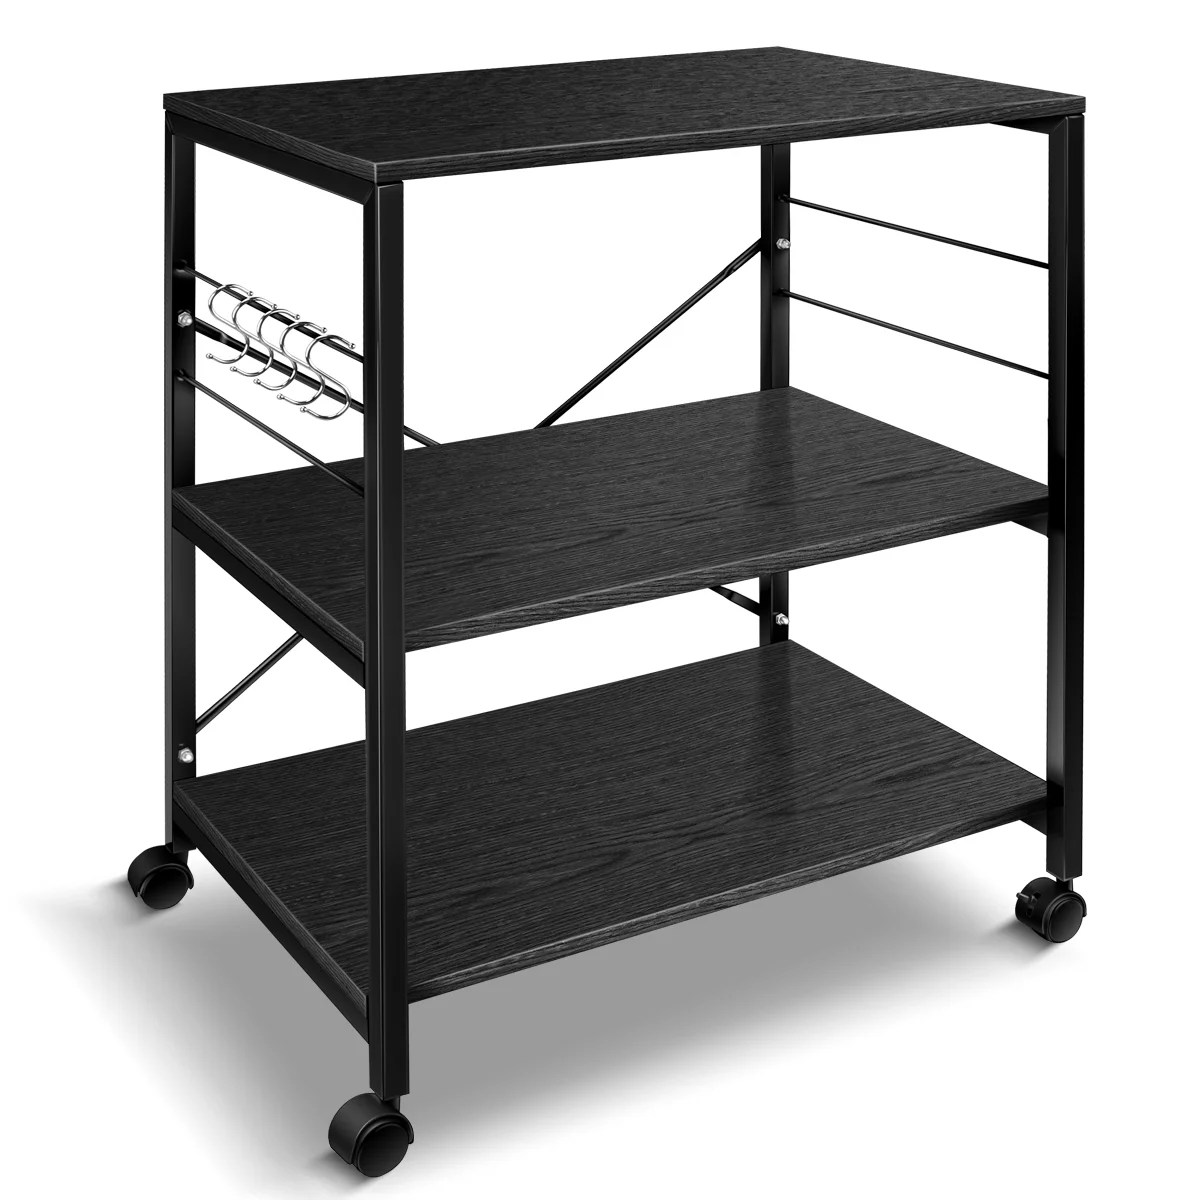 cheflaud kitchen microwave cart 3 tier kitchen utility cart vintage rolling bakers rack with 5 hooks for living room decoration